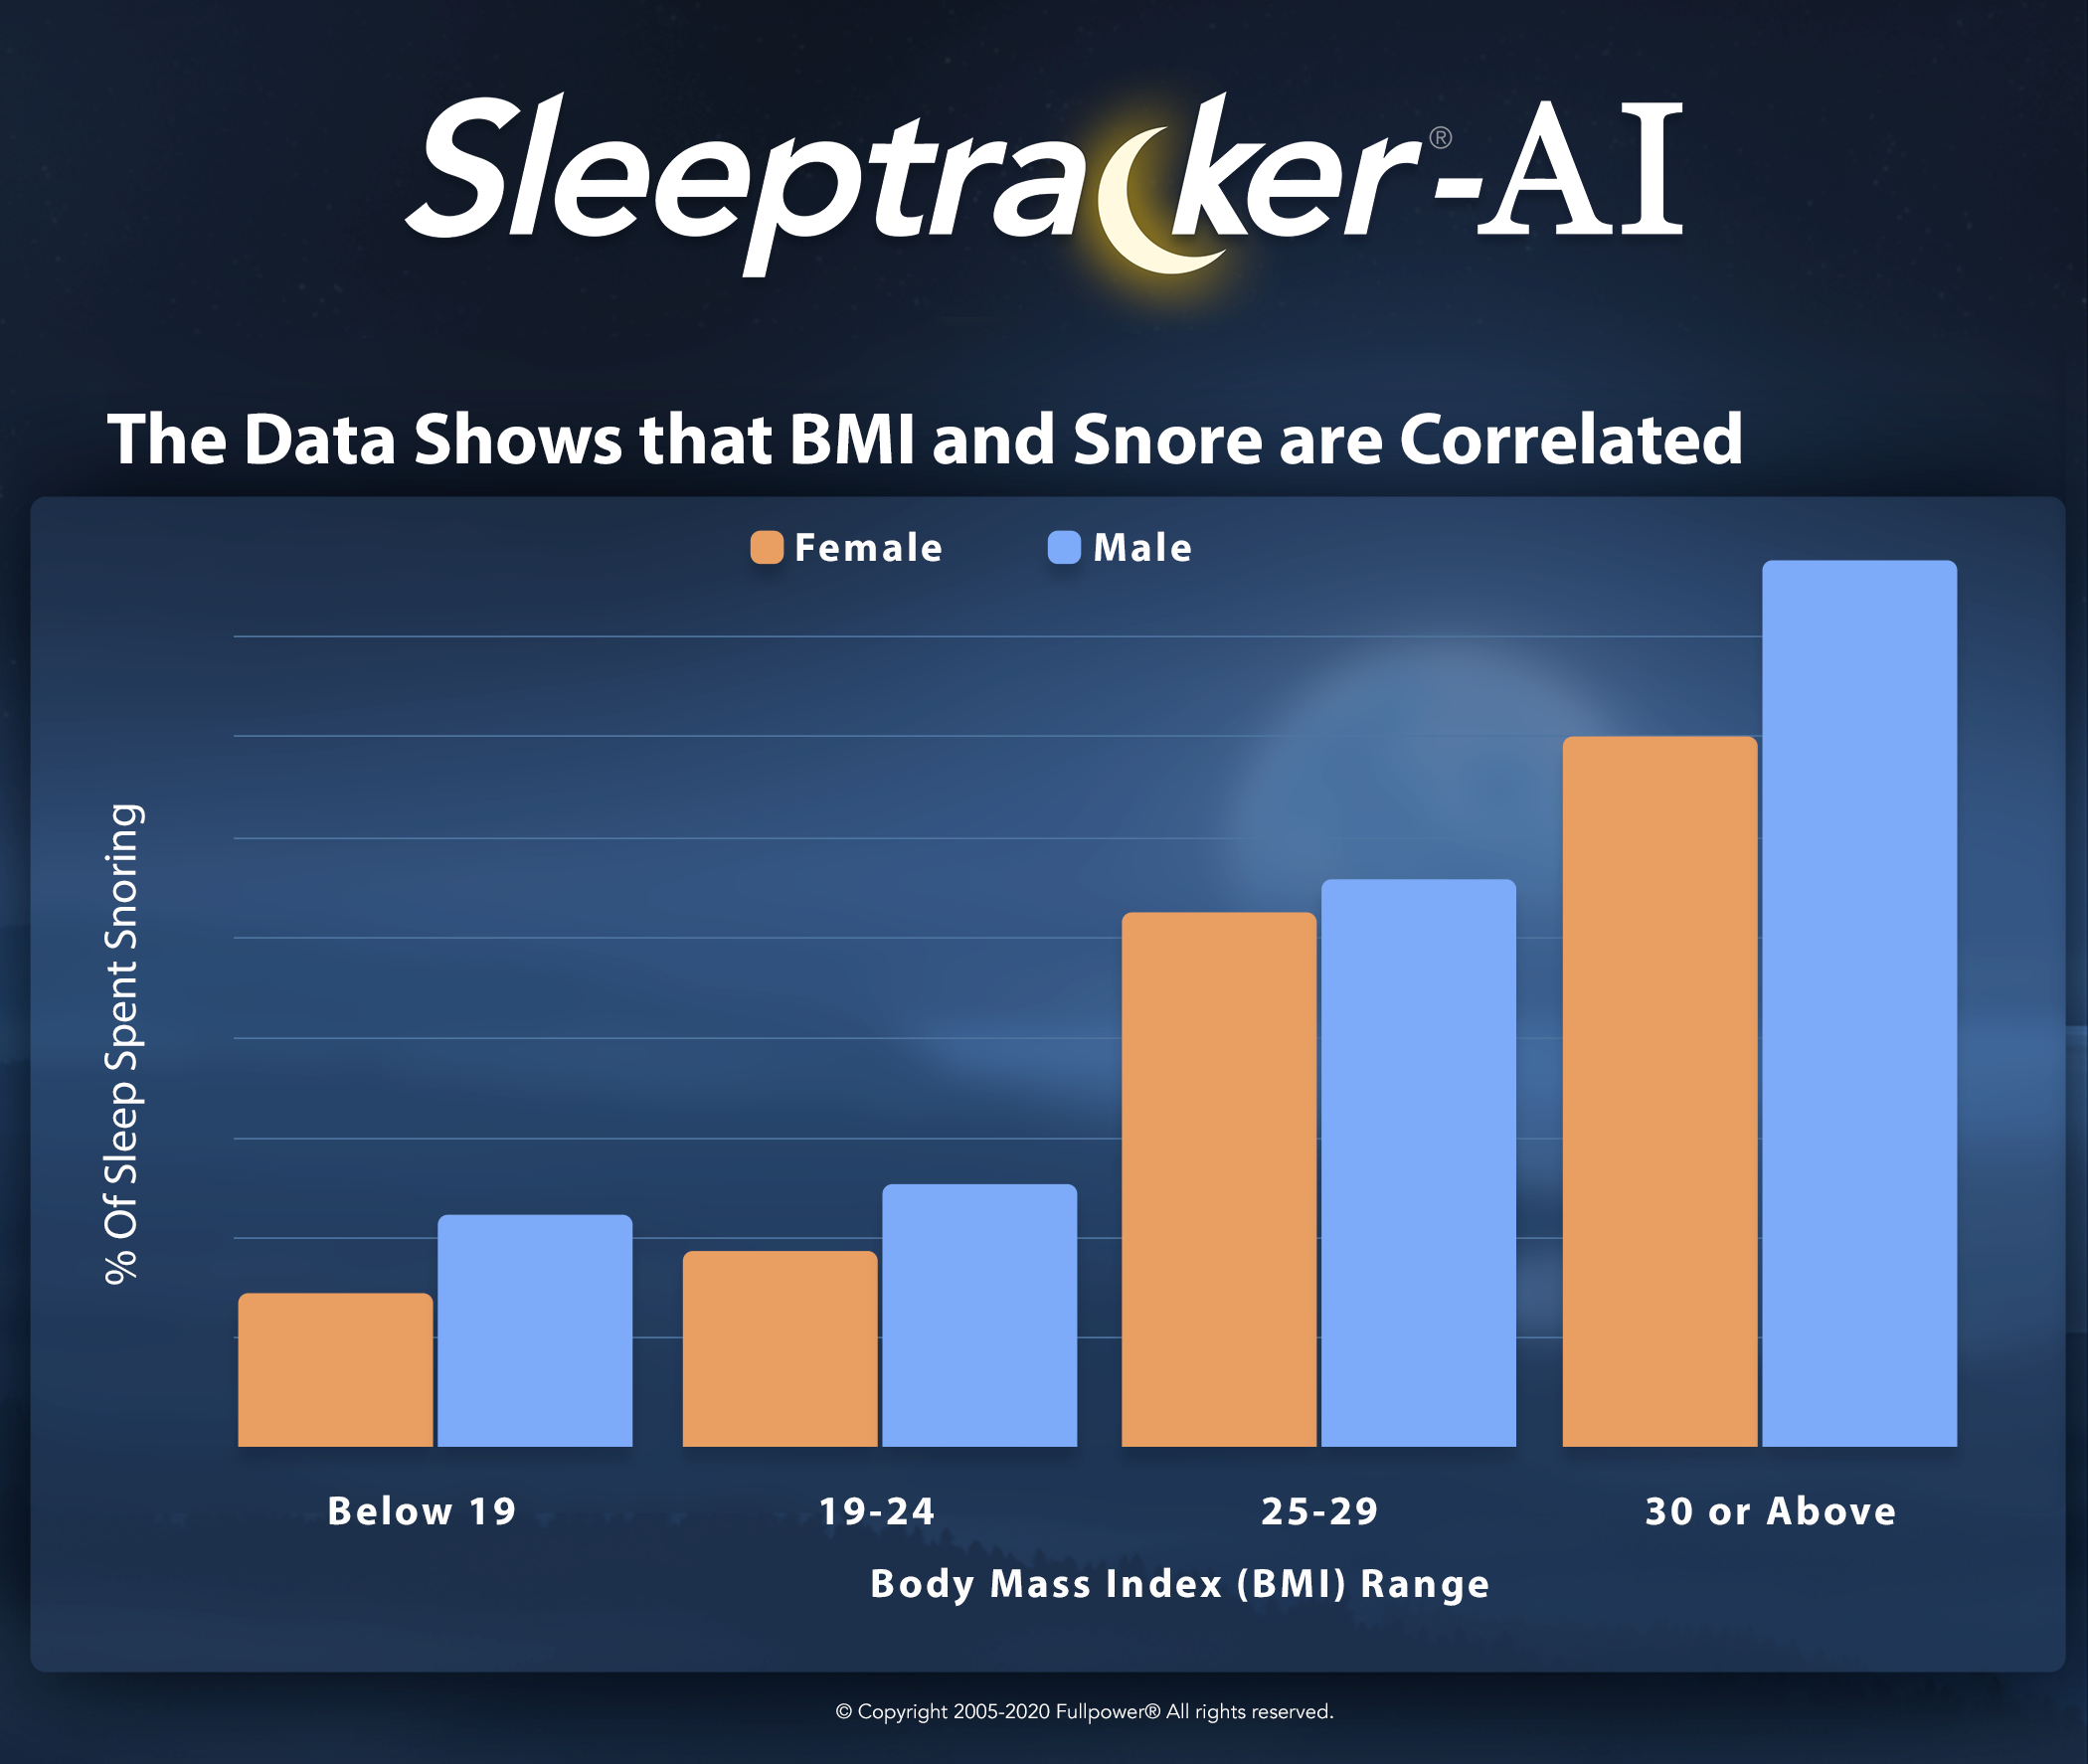 The Data Shows BMI & Snore are Correlated